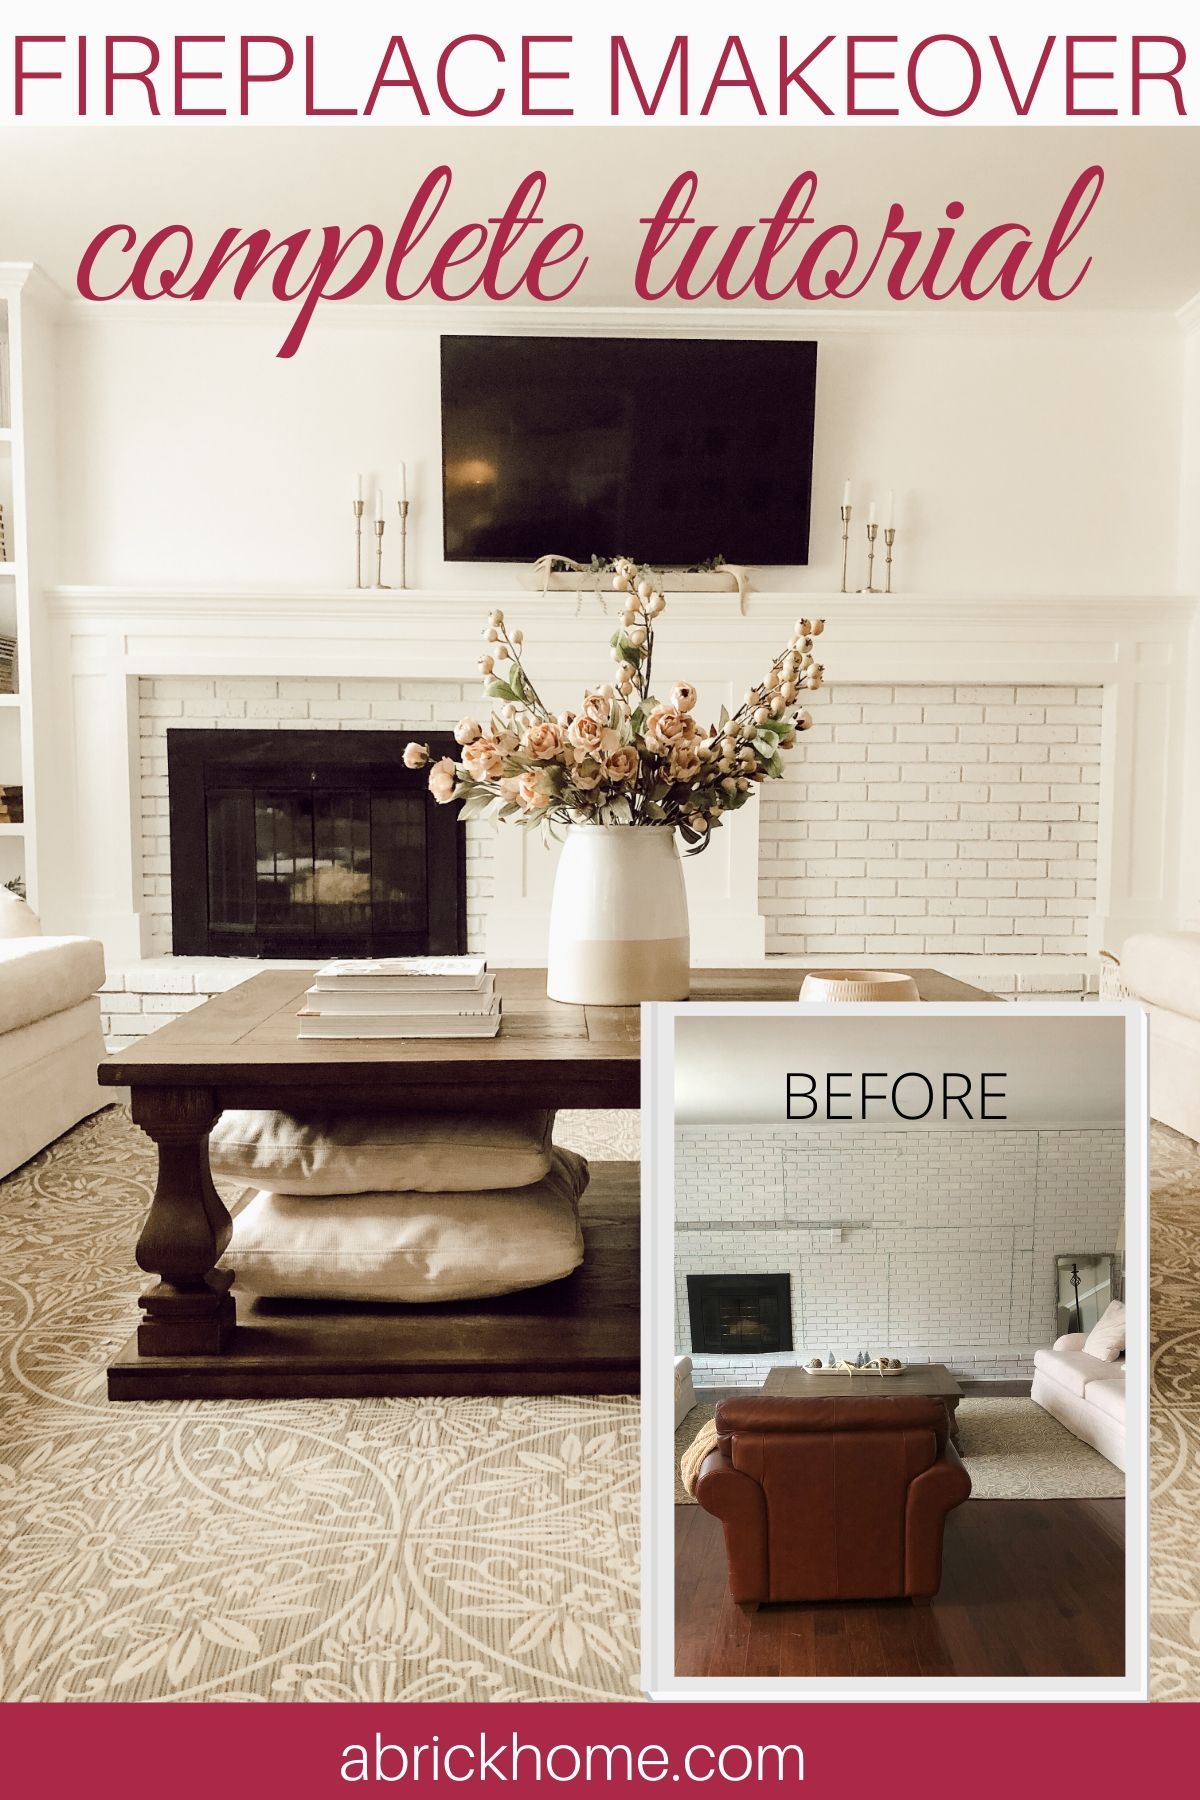 Diy Fireplace Makeover Tutorial Before And After Off Ce